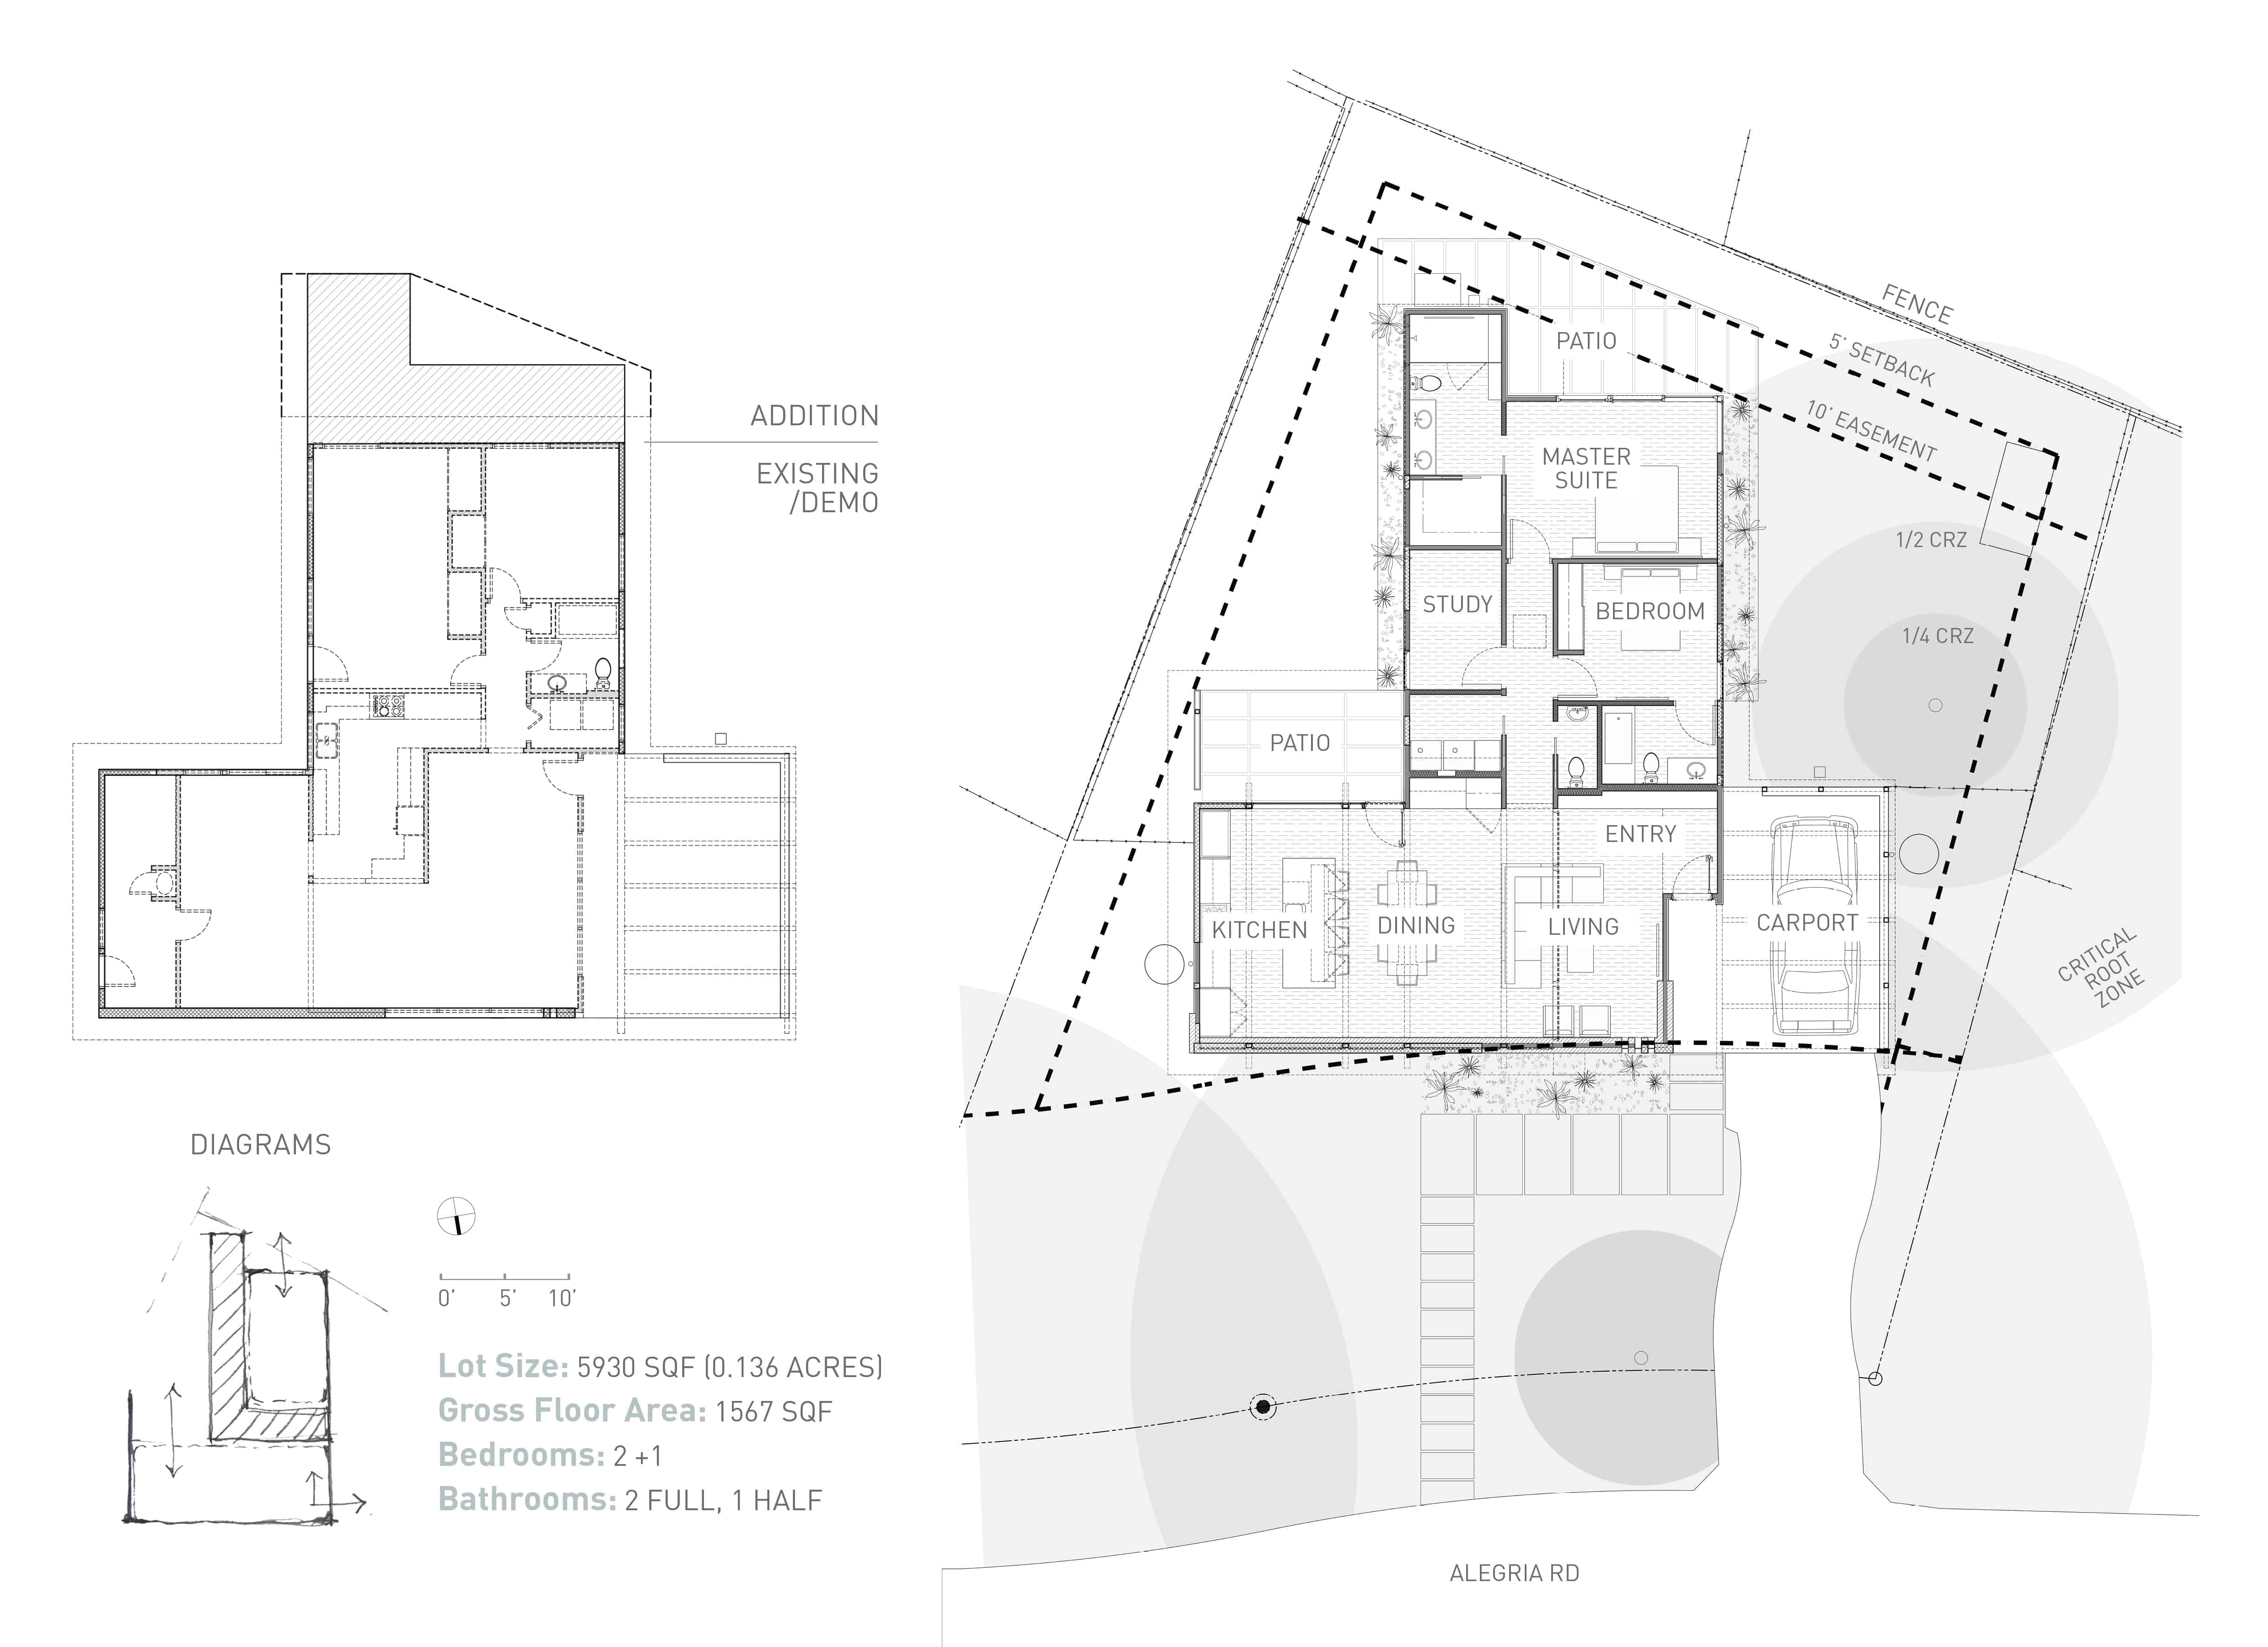 House layout of the Re-Open House designed by Matt Fajkus Architecture.